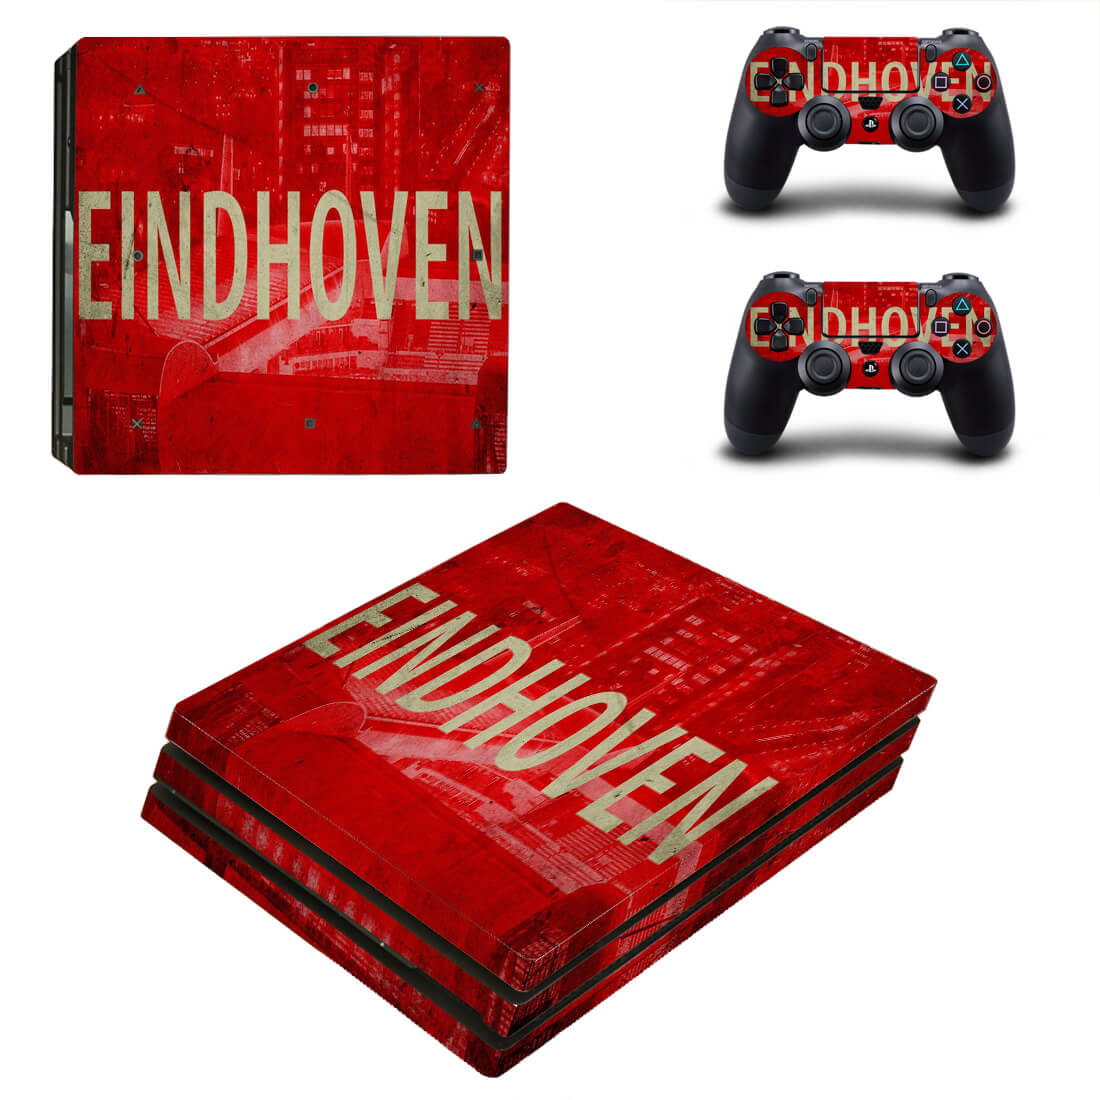 Eindhoven PS4 Pro skin